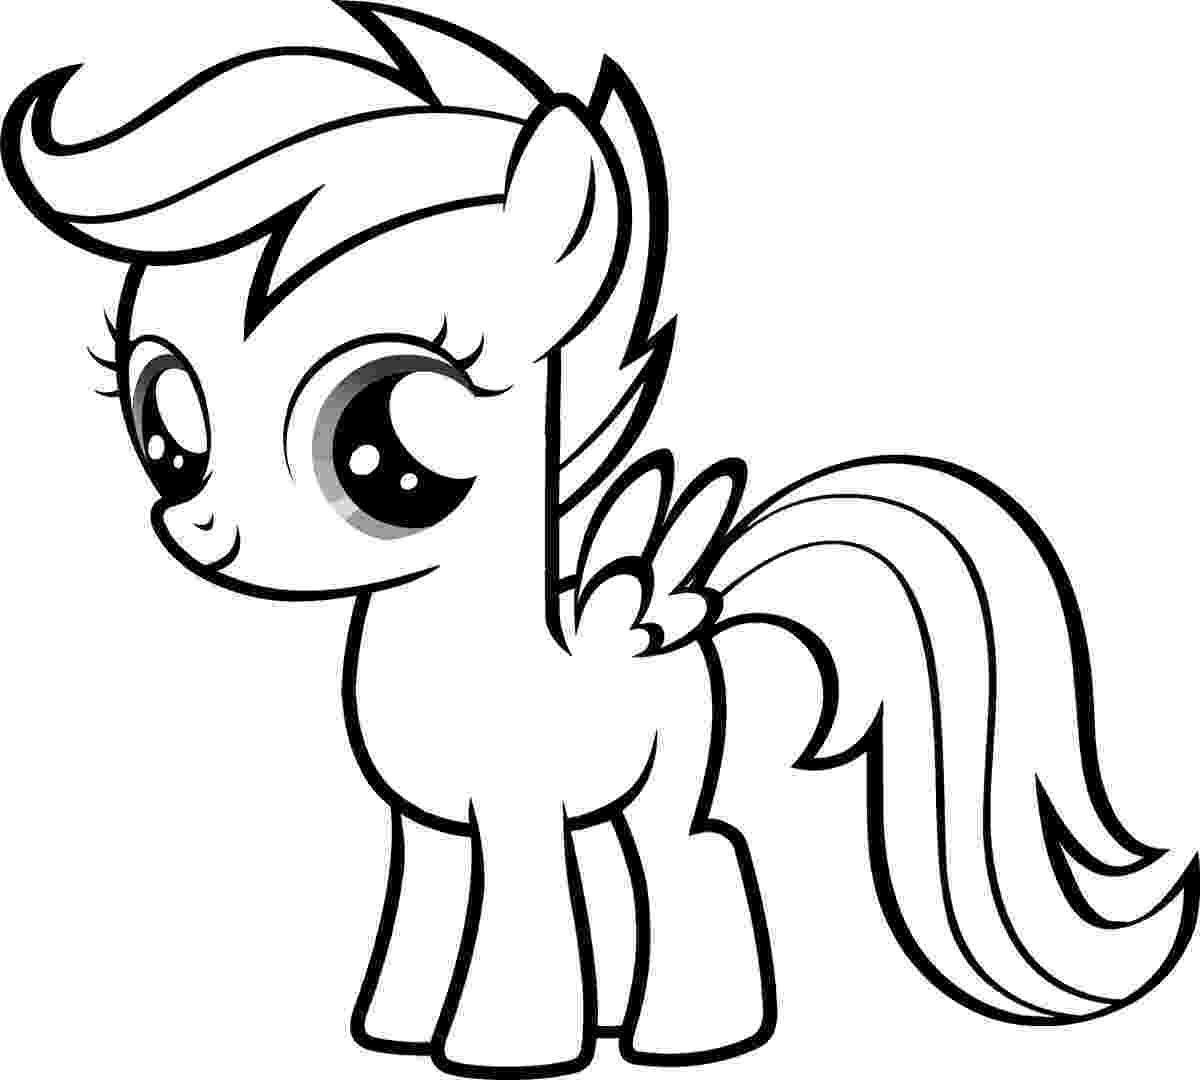 my little pony picture to color my little pony coloring pages free printable pictures my picture to little pony color